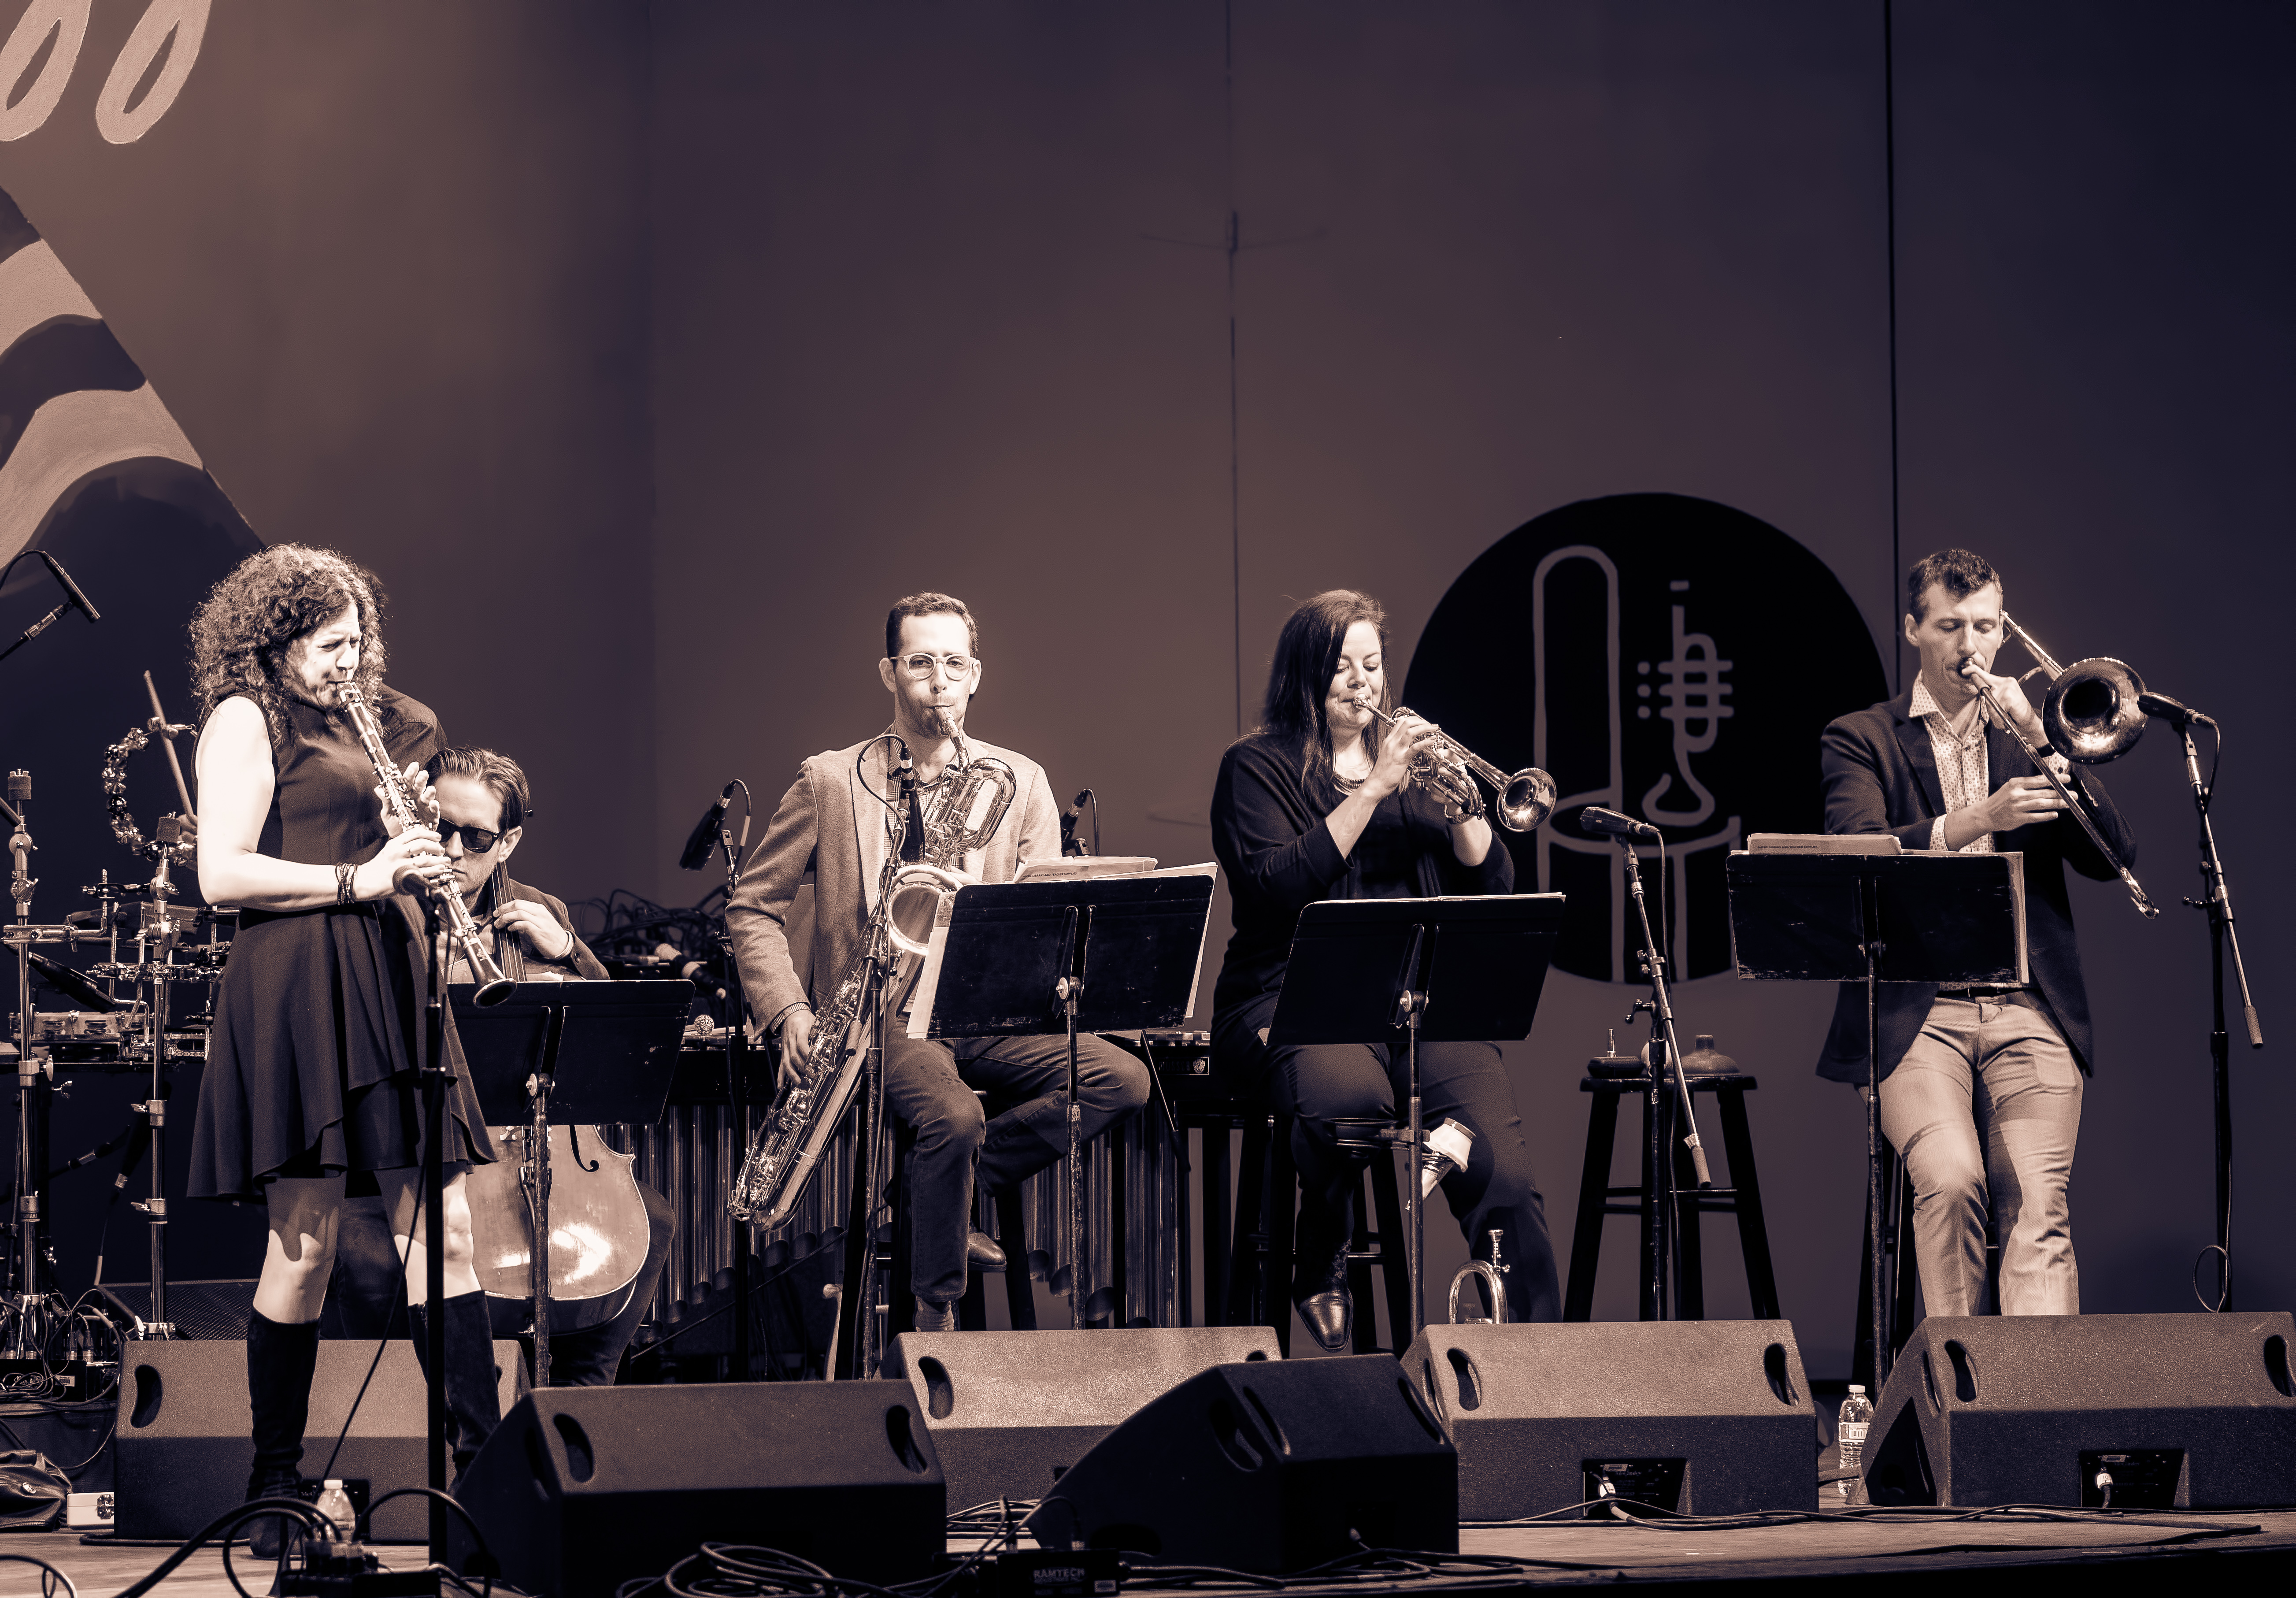 Anat Cohen, Christopher Hoffman, Owen Broder, Nadje Noordhuis and Nick Finzer with the Anat Cohen Tentet at the Monterey Jazz Festival 2018